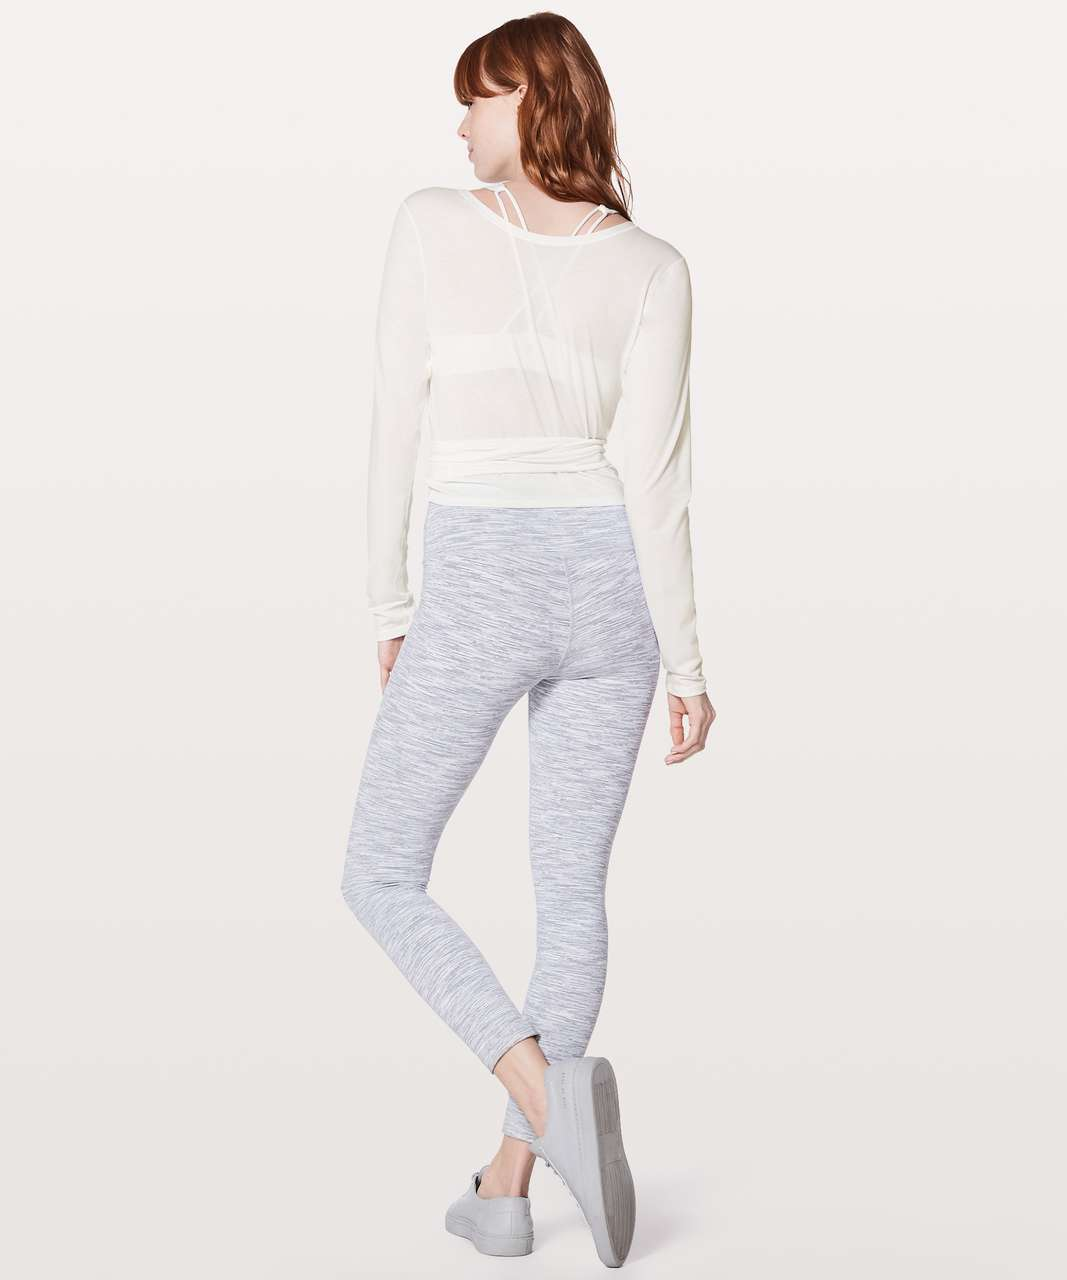 Lululemon Tied To It Wrap - Heathered White